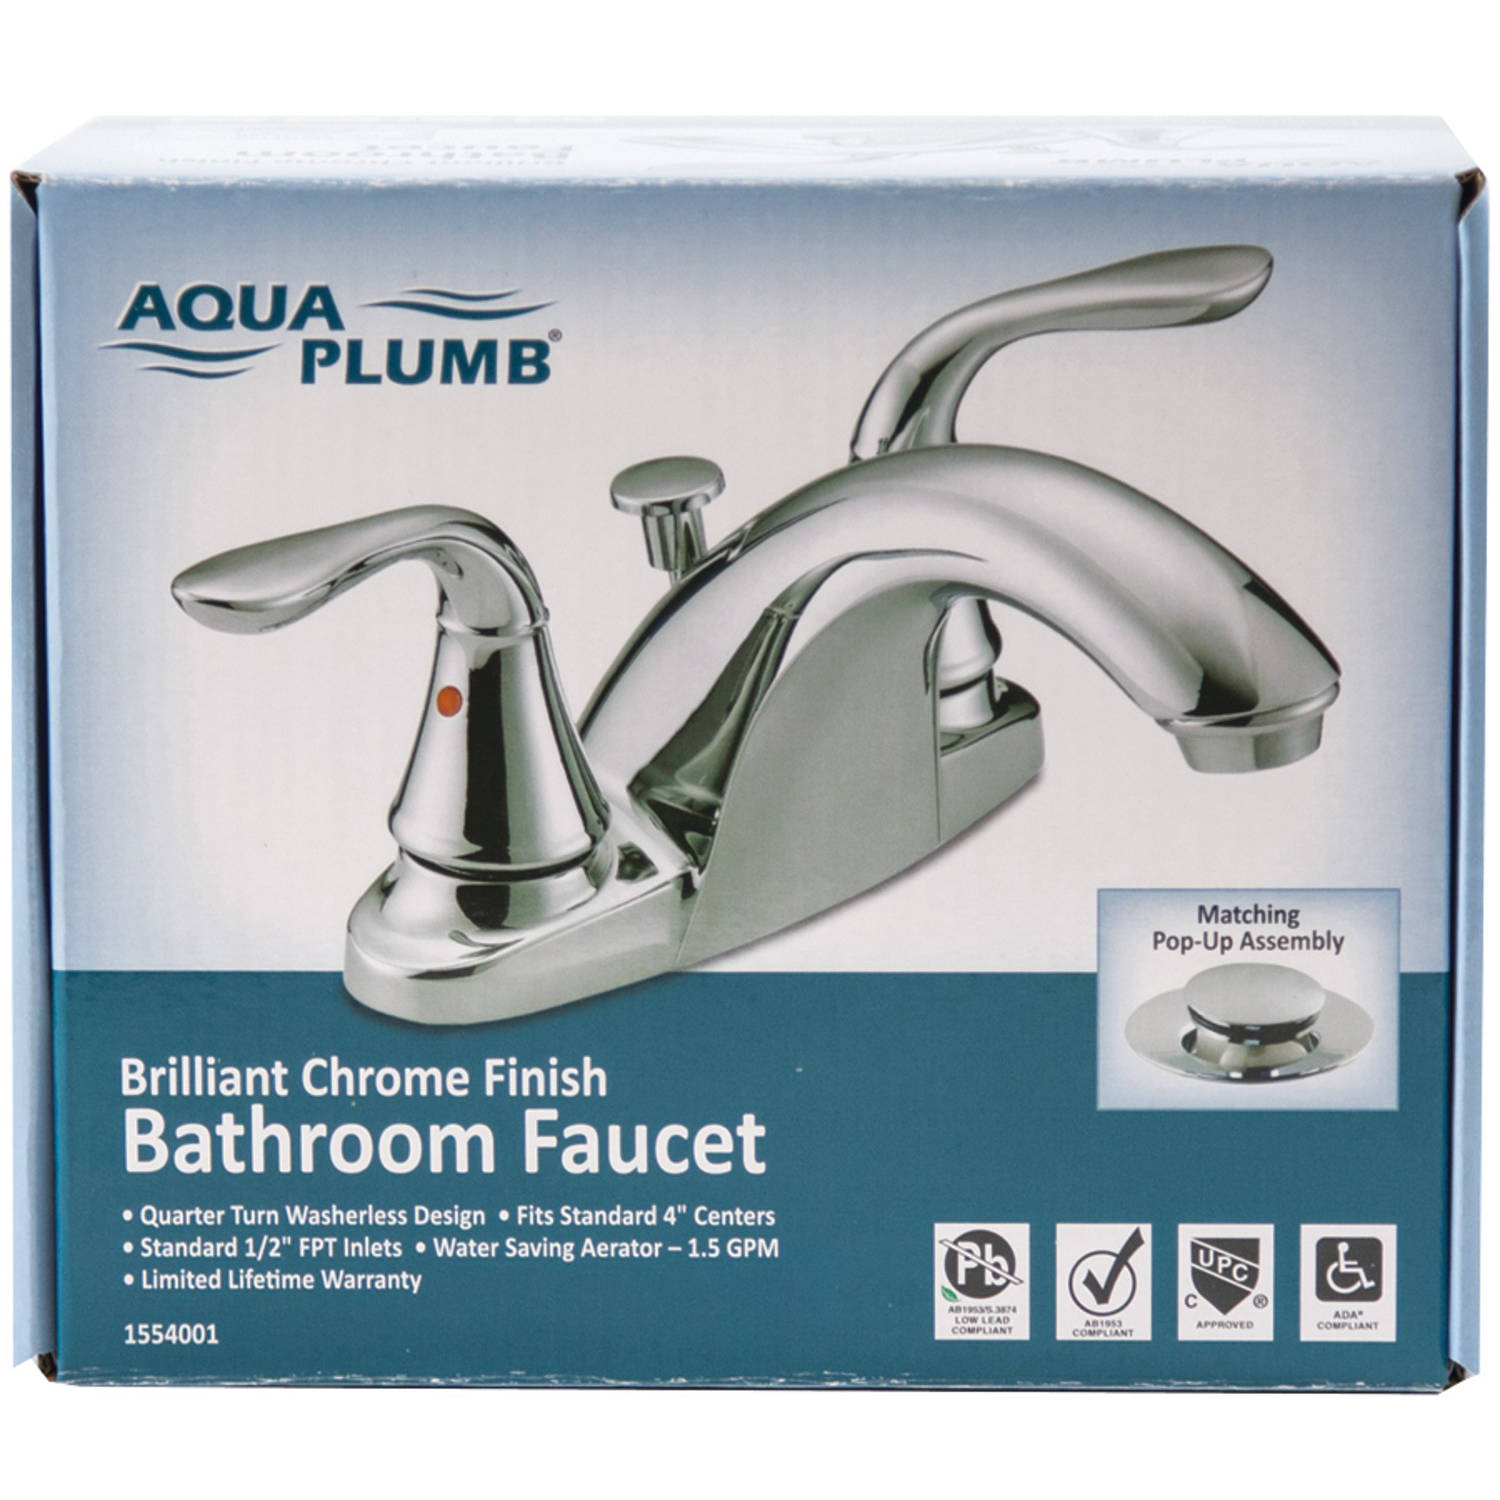 Aqua Plumb 1554001 Premium Chrome-Plated 2-Handle Bathroom Faucet